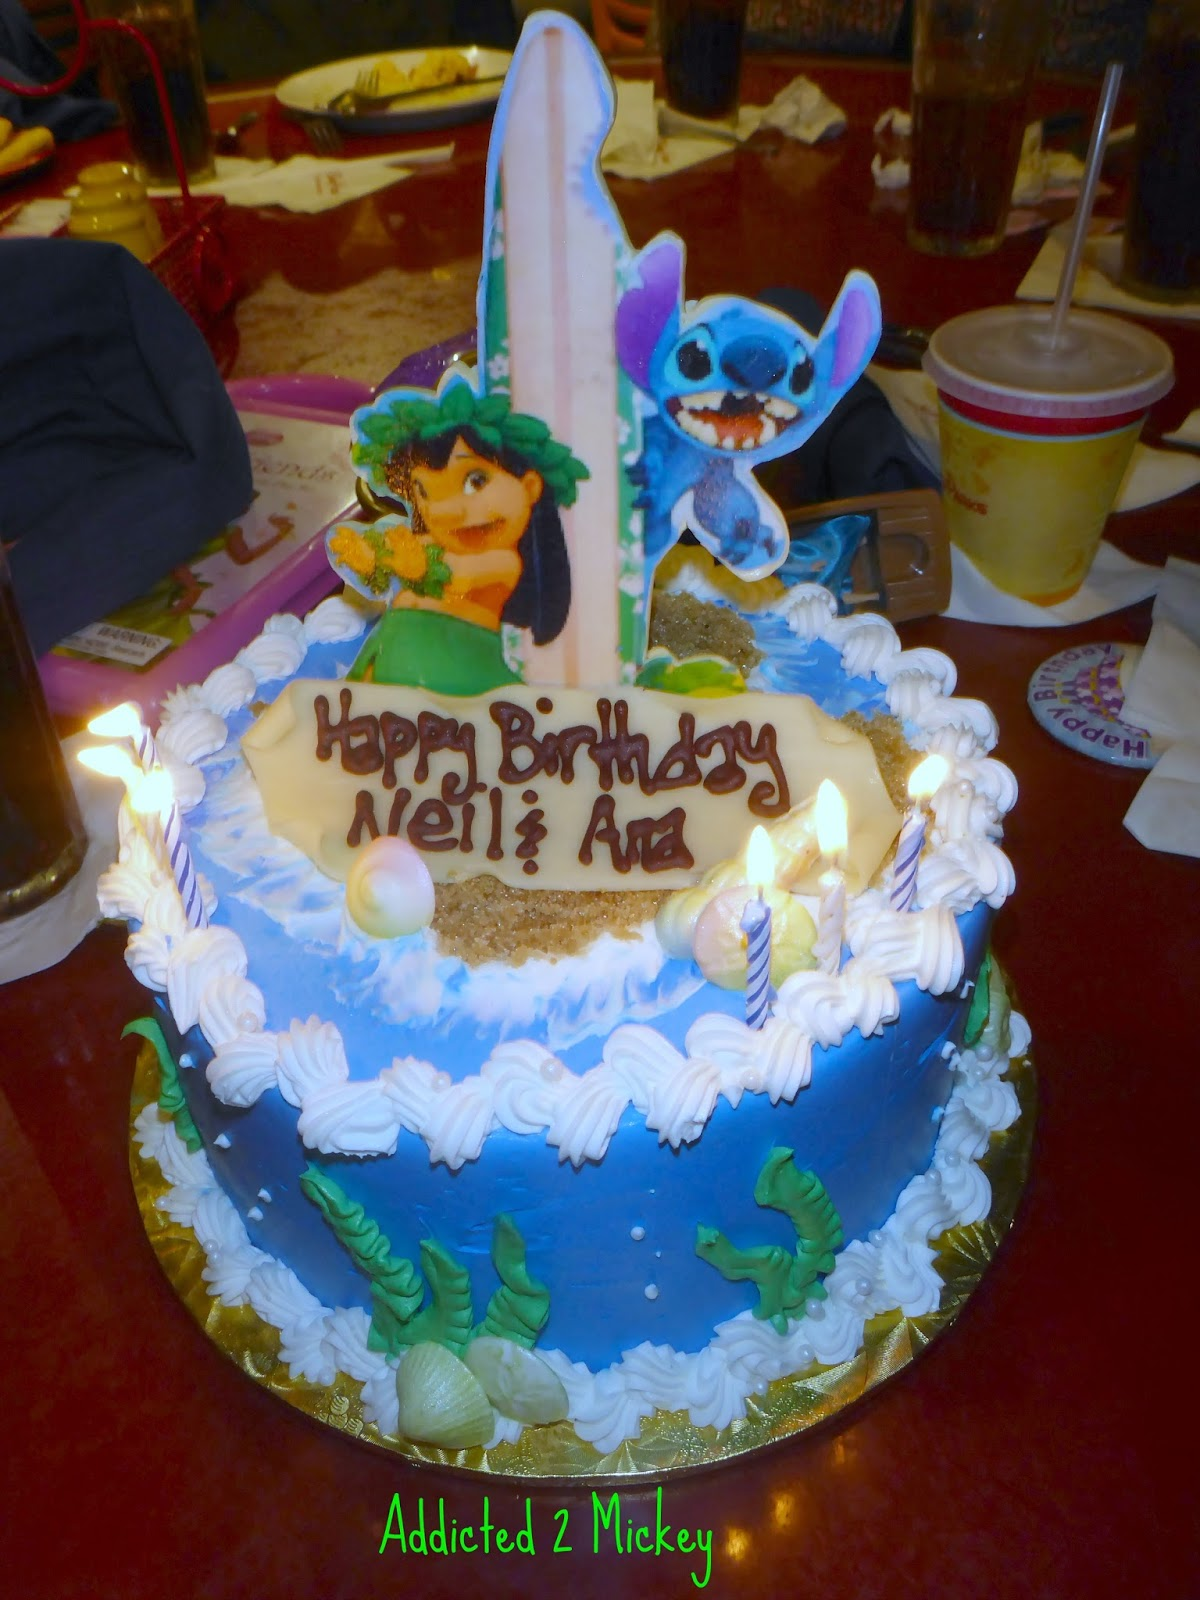 Addicted 2 Mickey Foodie Friday Specialty Cakes At Walt